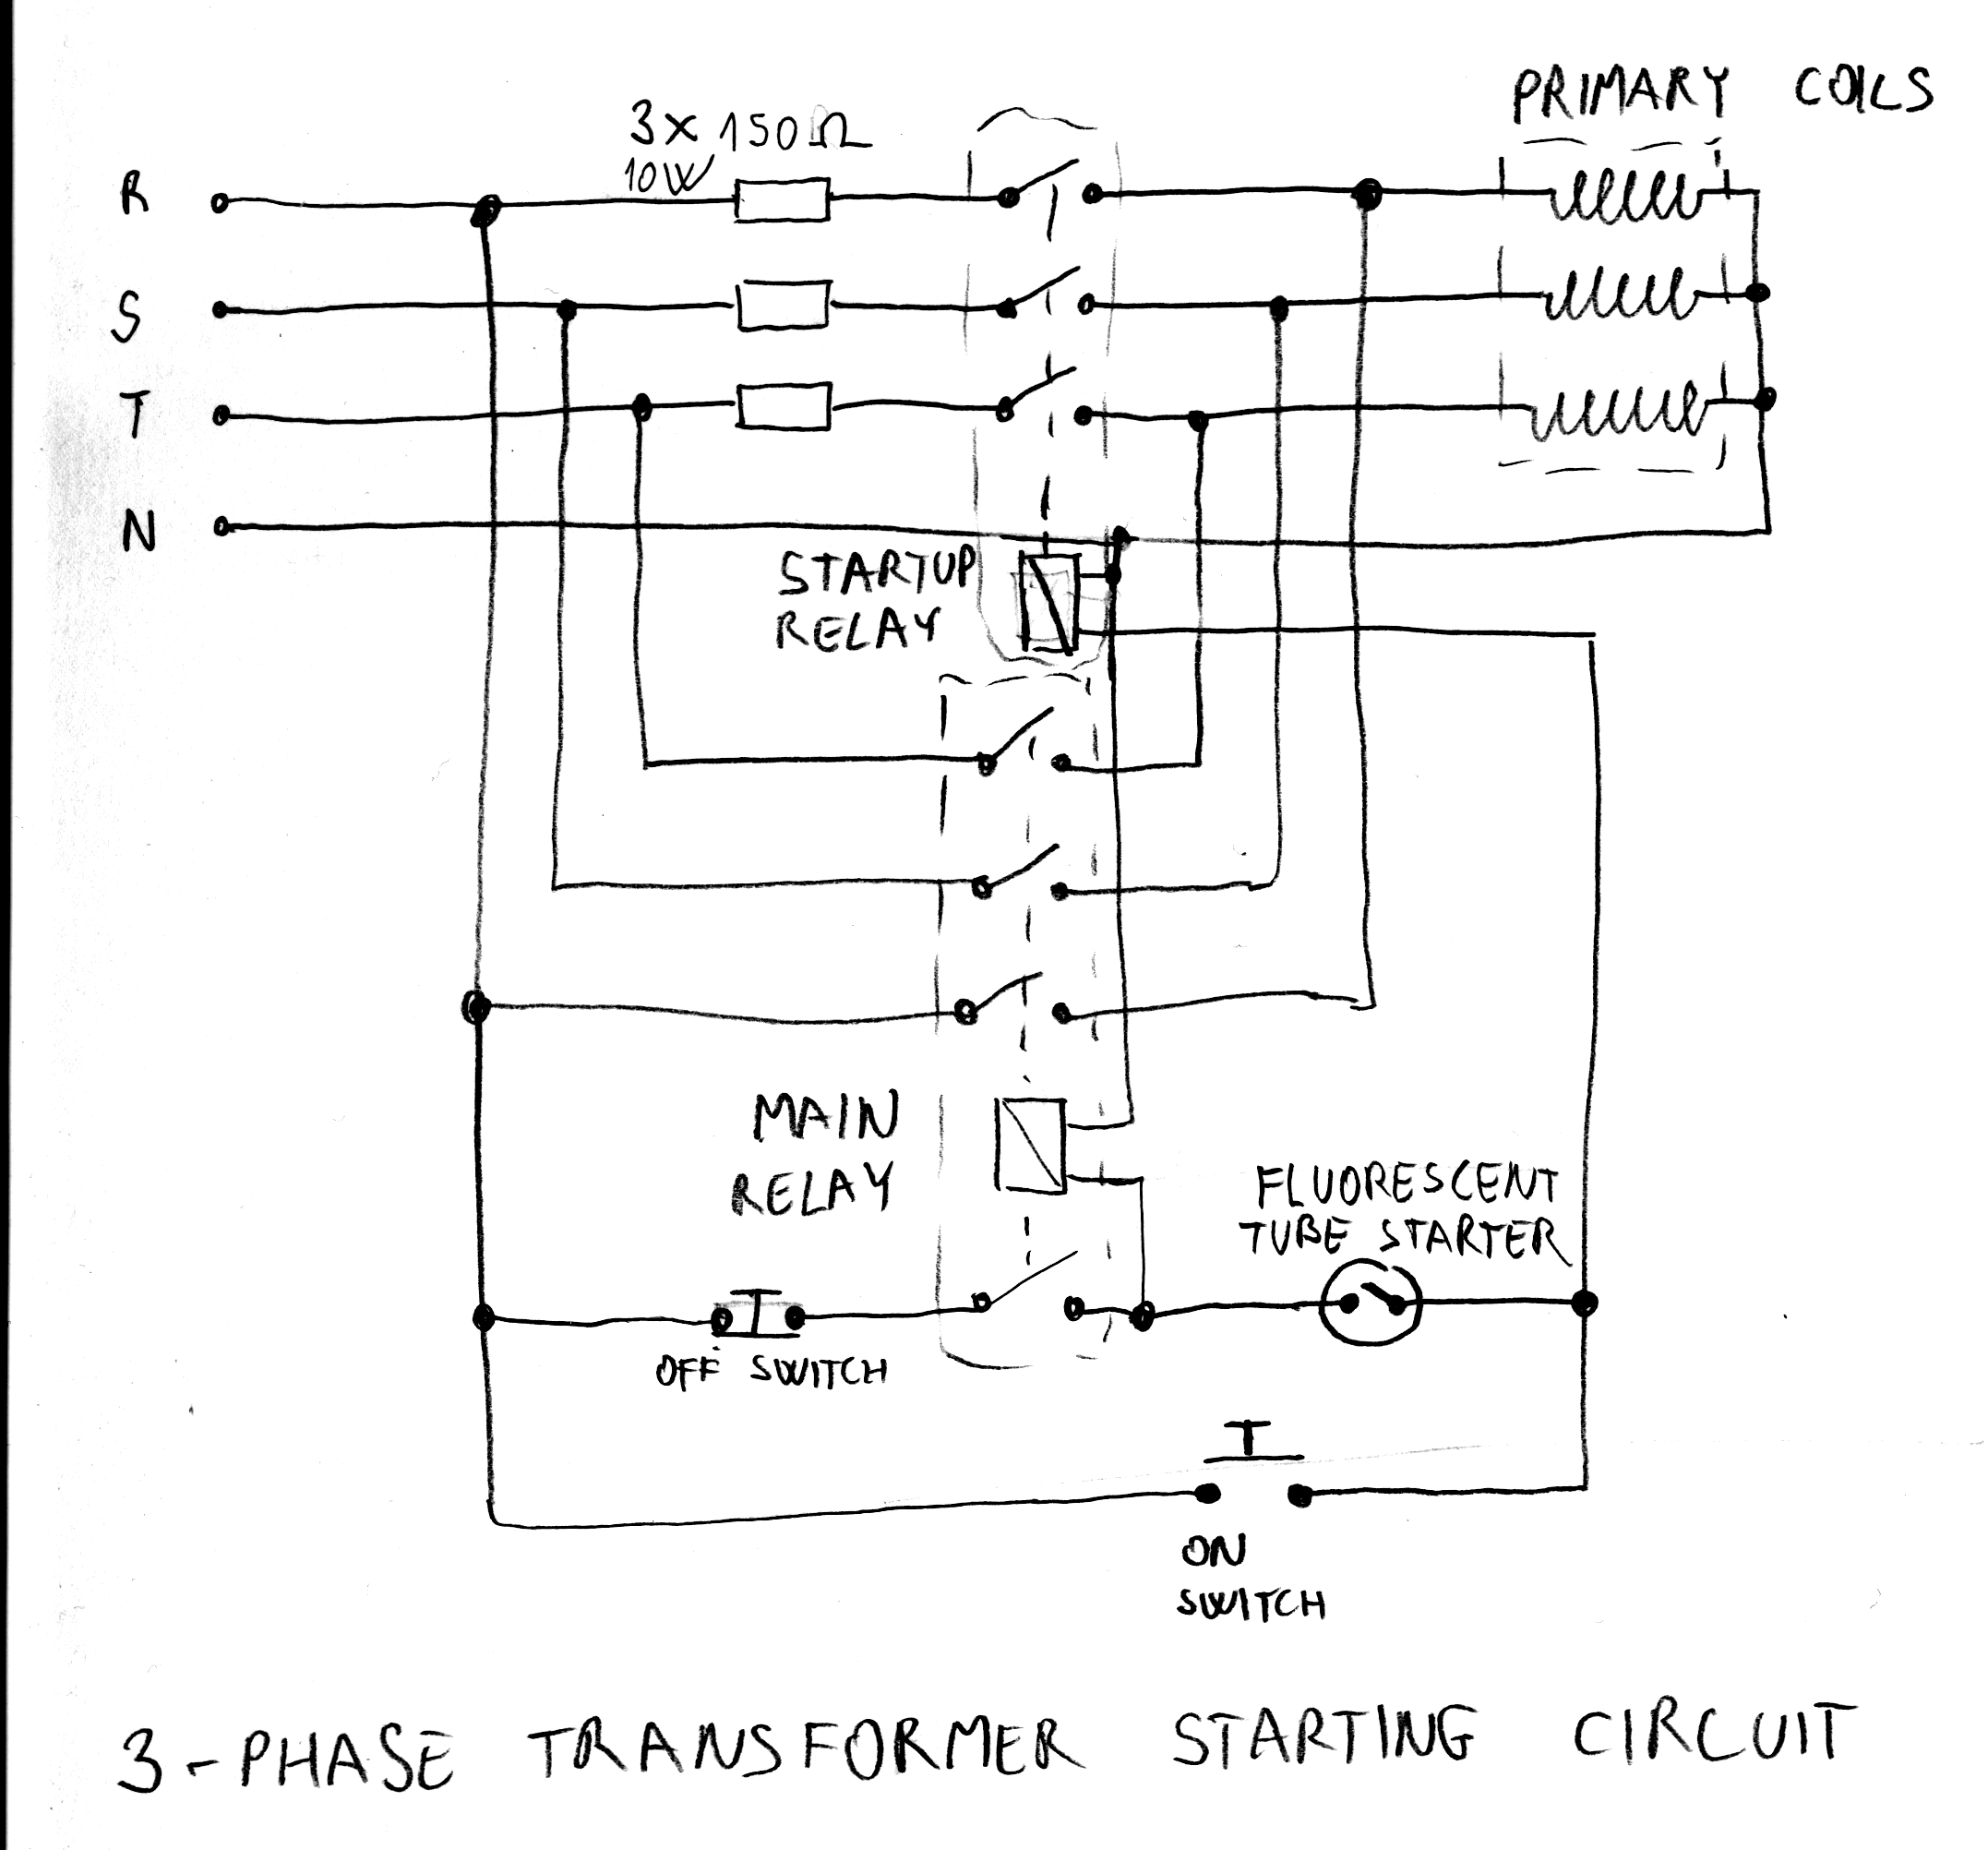 transformer diagram and how it works distributor wiring variable starter circuit marko 39s science site